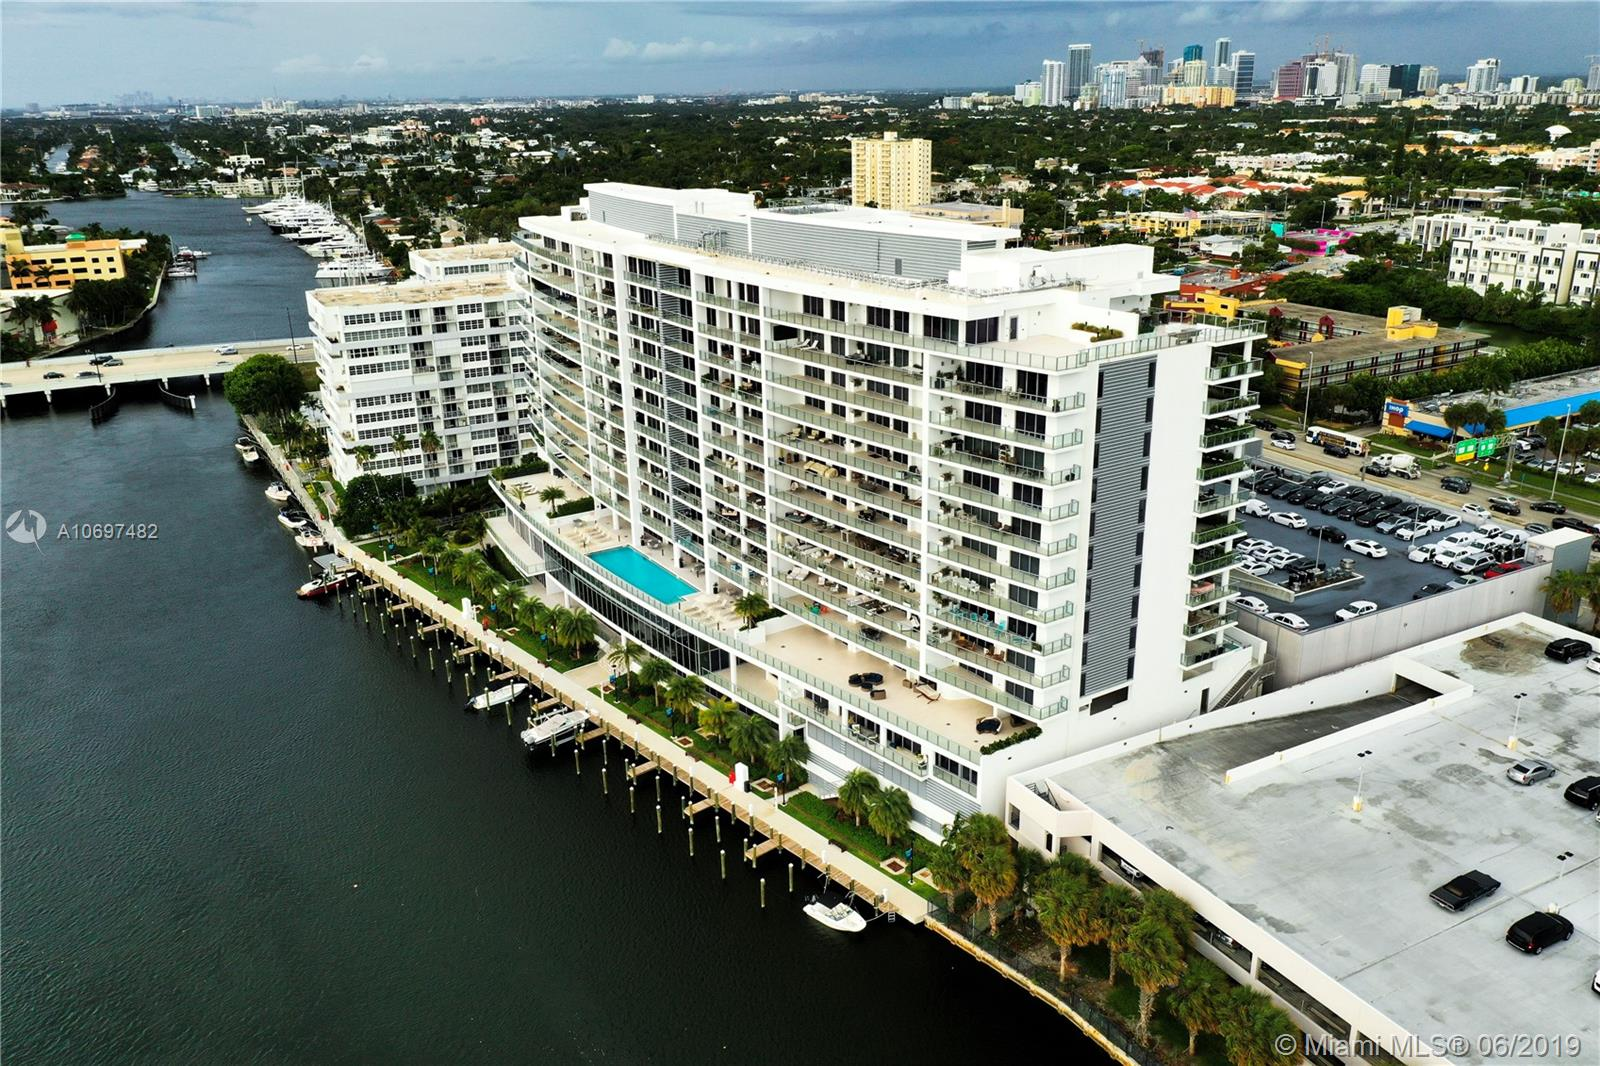 Riva is a new contemporary condominium located in the heart of Fort Lauderdale! Situated on the Middle River, this Italian-designed enclave offers 400Ft. of landscaped waterfront private boat slips +40,000sq.ft.of amenities. Each residence will have expansive terraces with panoramic outdoor living and summer kitchens. European Kitchens finished with Sub Zero & Wolf appliances and imported Italian cabinetry finishes.Unit has 1 storage spacequestion for the unit call 754-242-3222or it can be made all in one deal adding $115,000 to list price